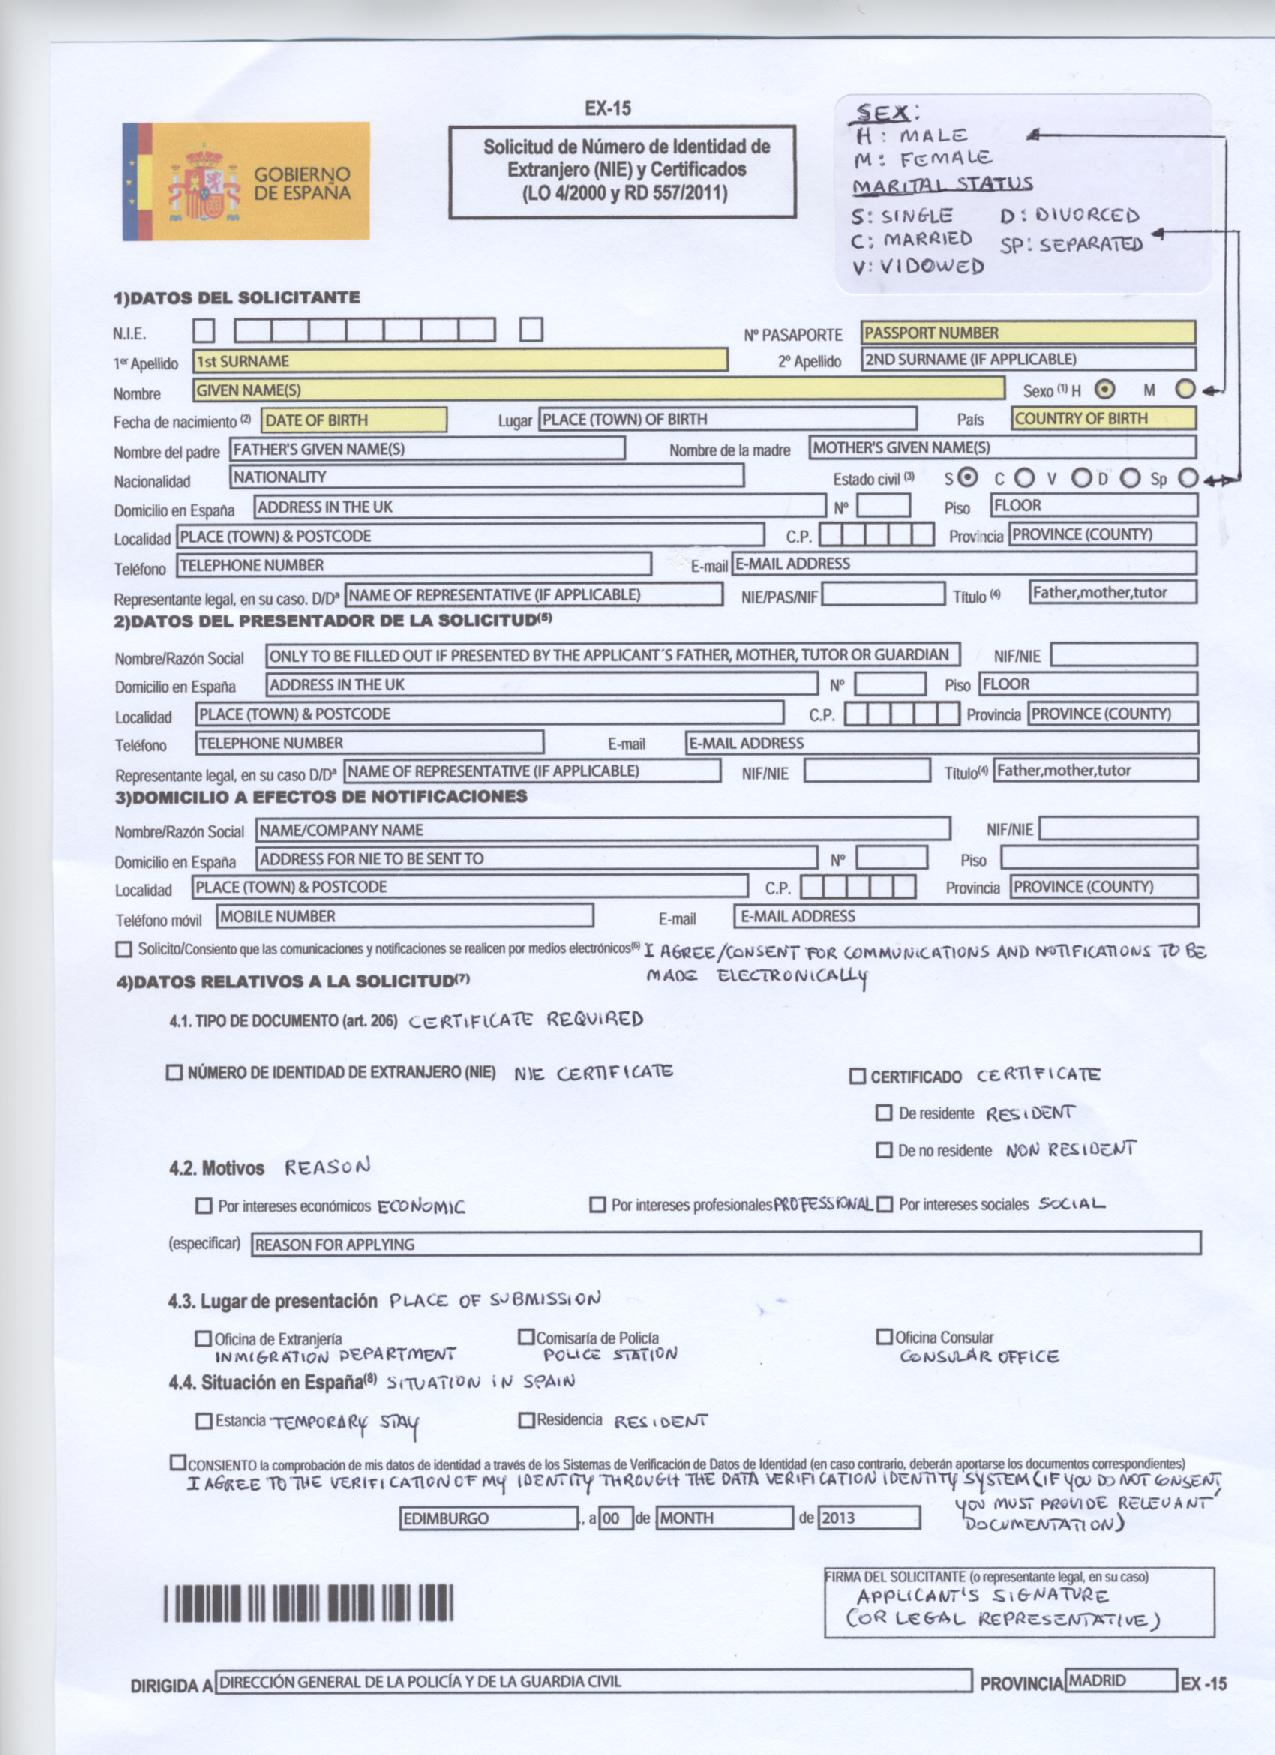 metro police application forms 2016 pdf